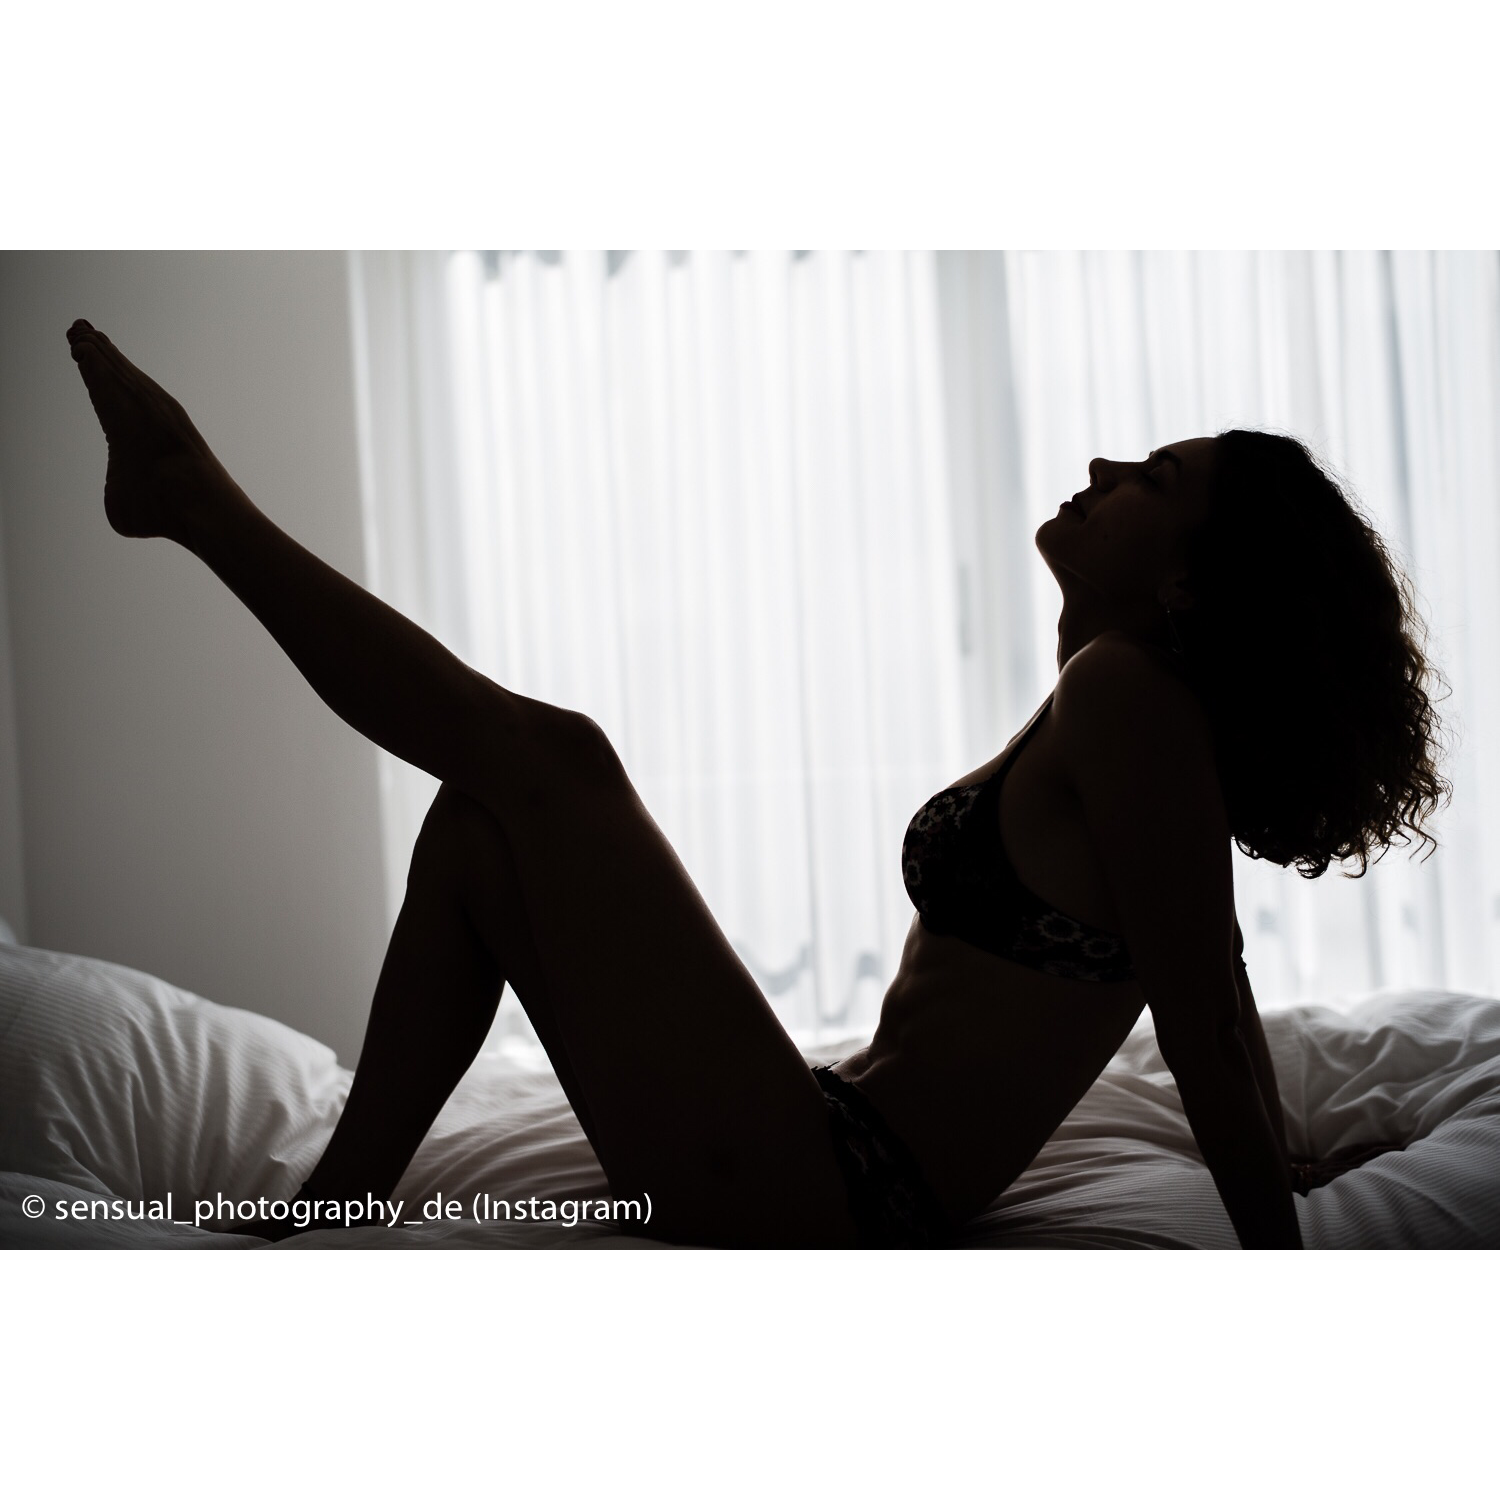 a woman's silhouette on a bed in a boat pose variation